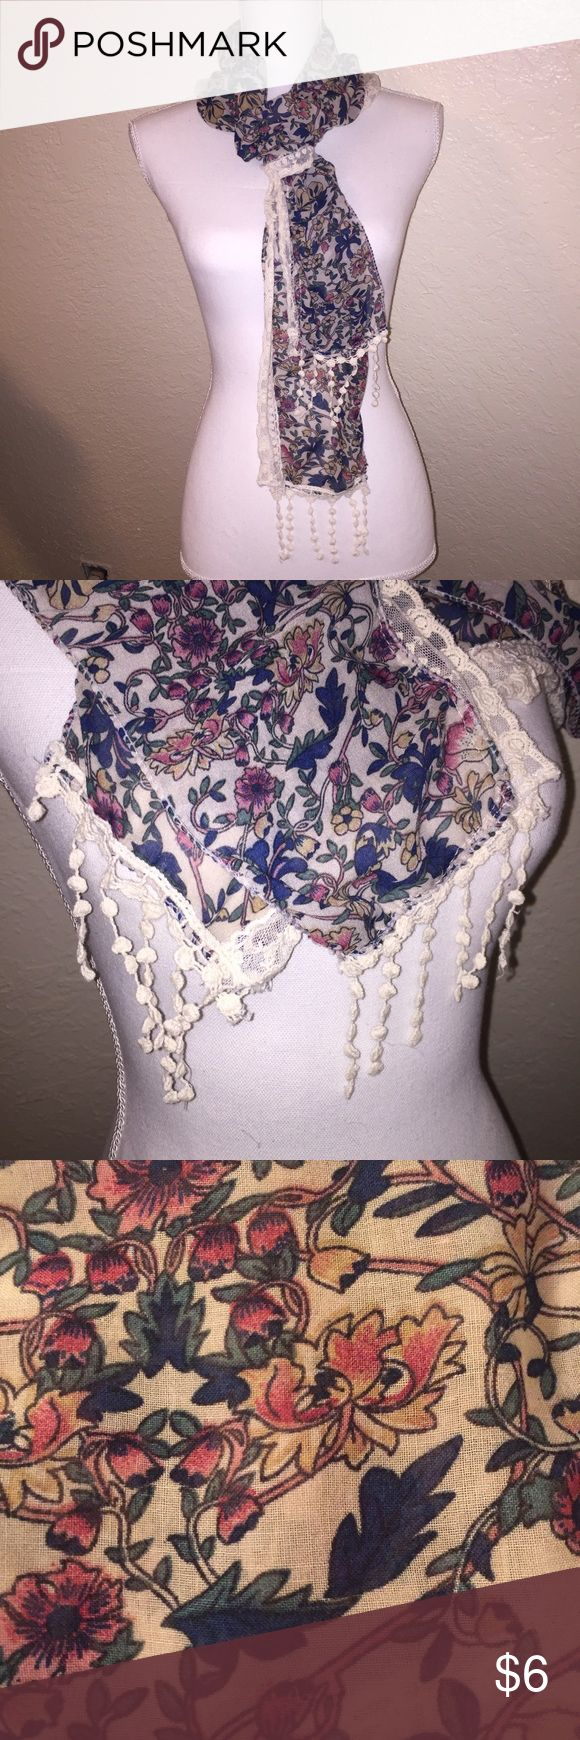 Floral Knit and Crochet Scarf This scarf has a vintage look to it. Features a floral pattern with crochet tassles and lace along the edge. NWOT never worn. Accessories Scarves & Wraps